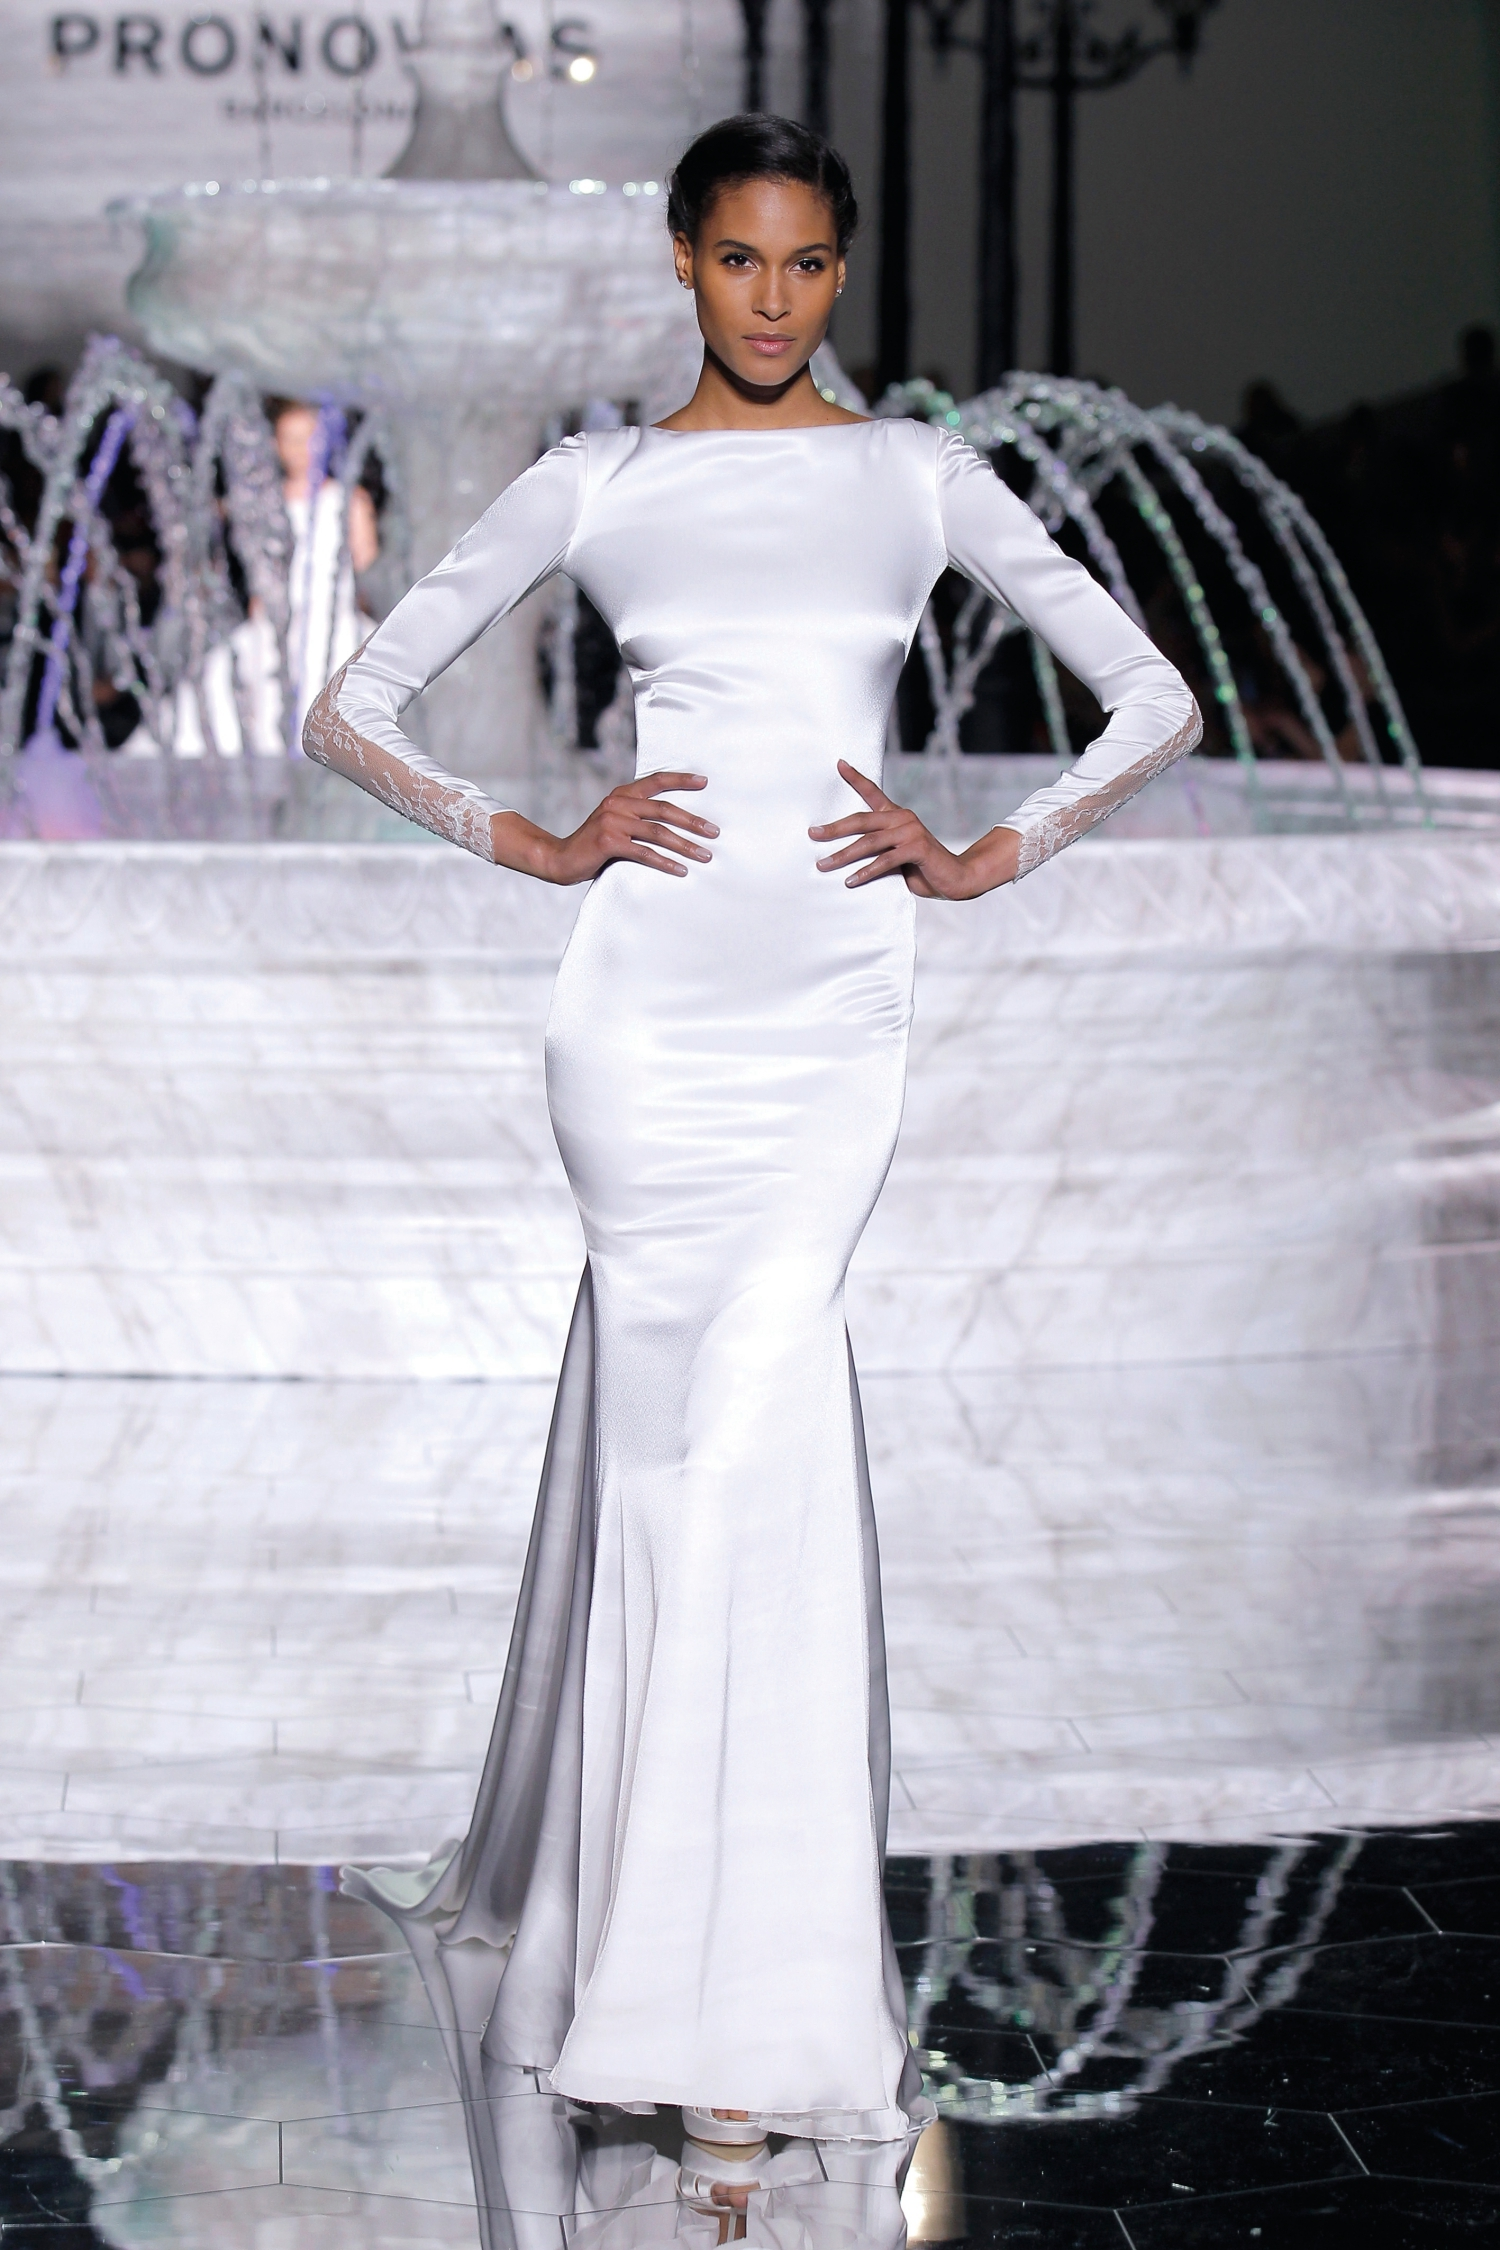 1-PRONOVIAS FASHION SHOW_Rachel